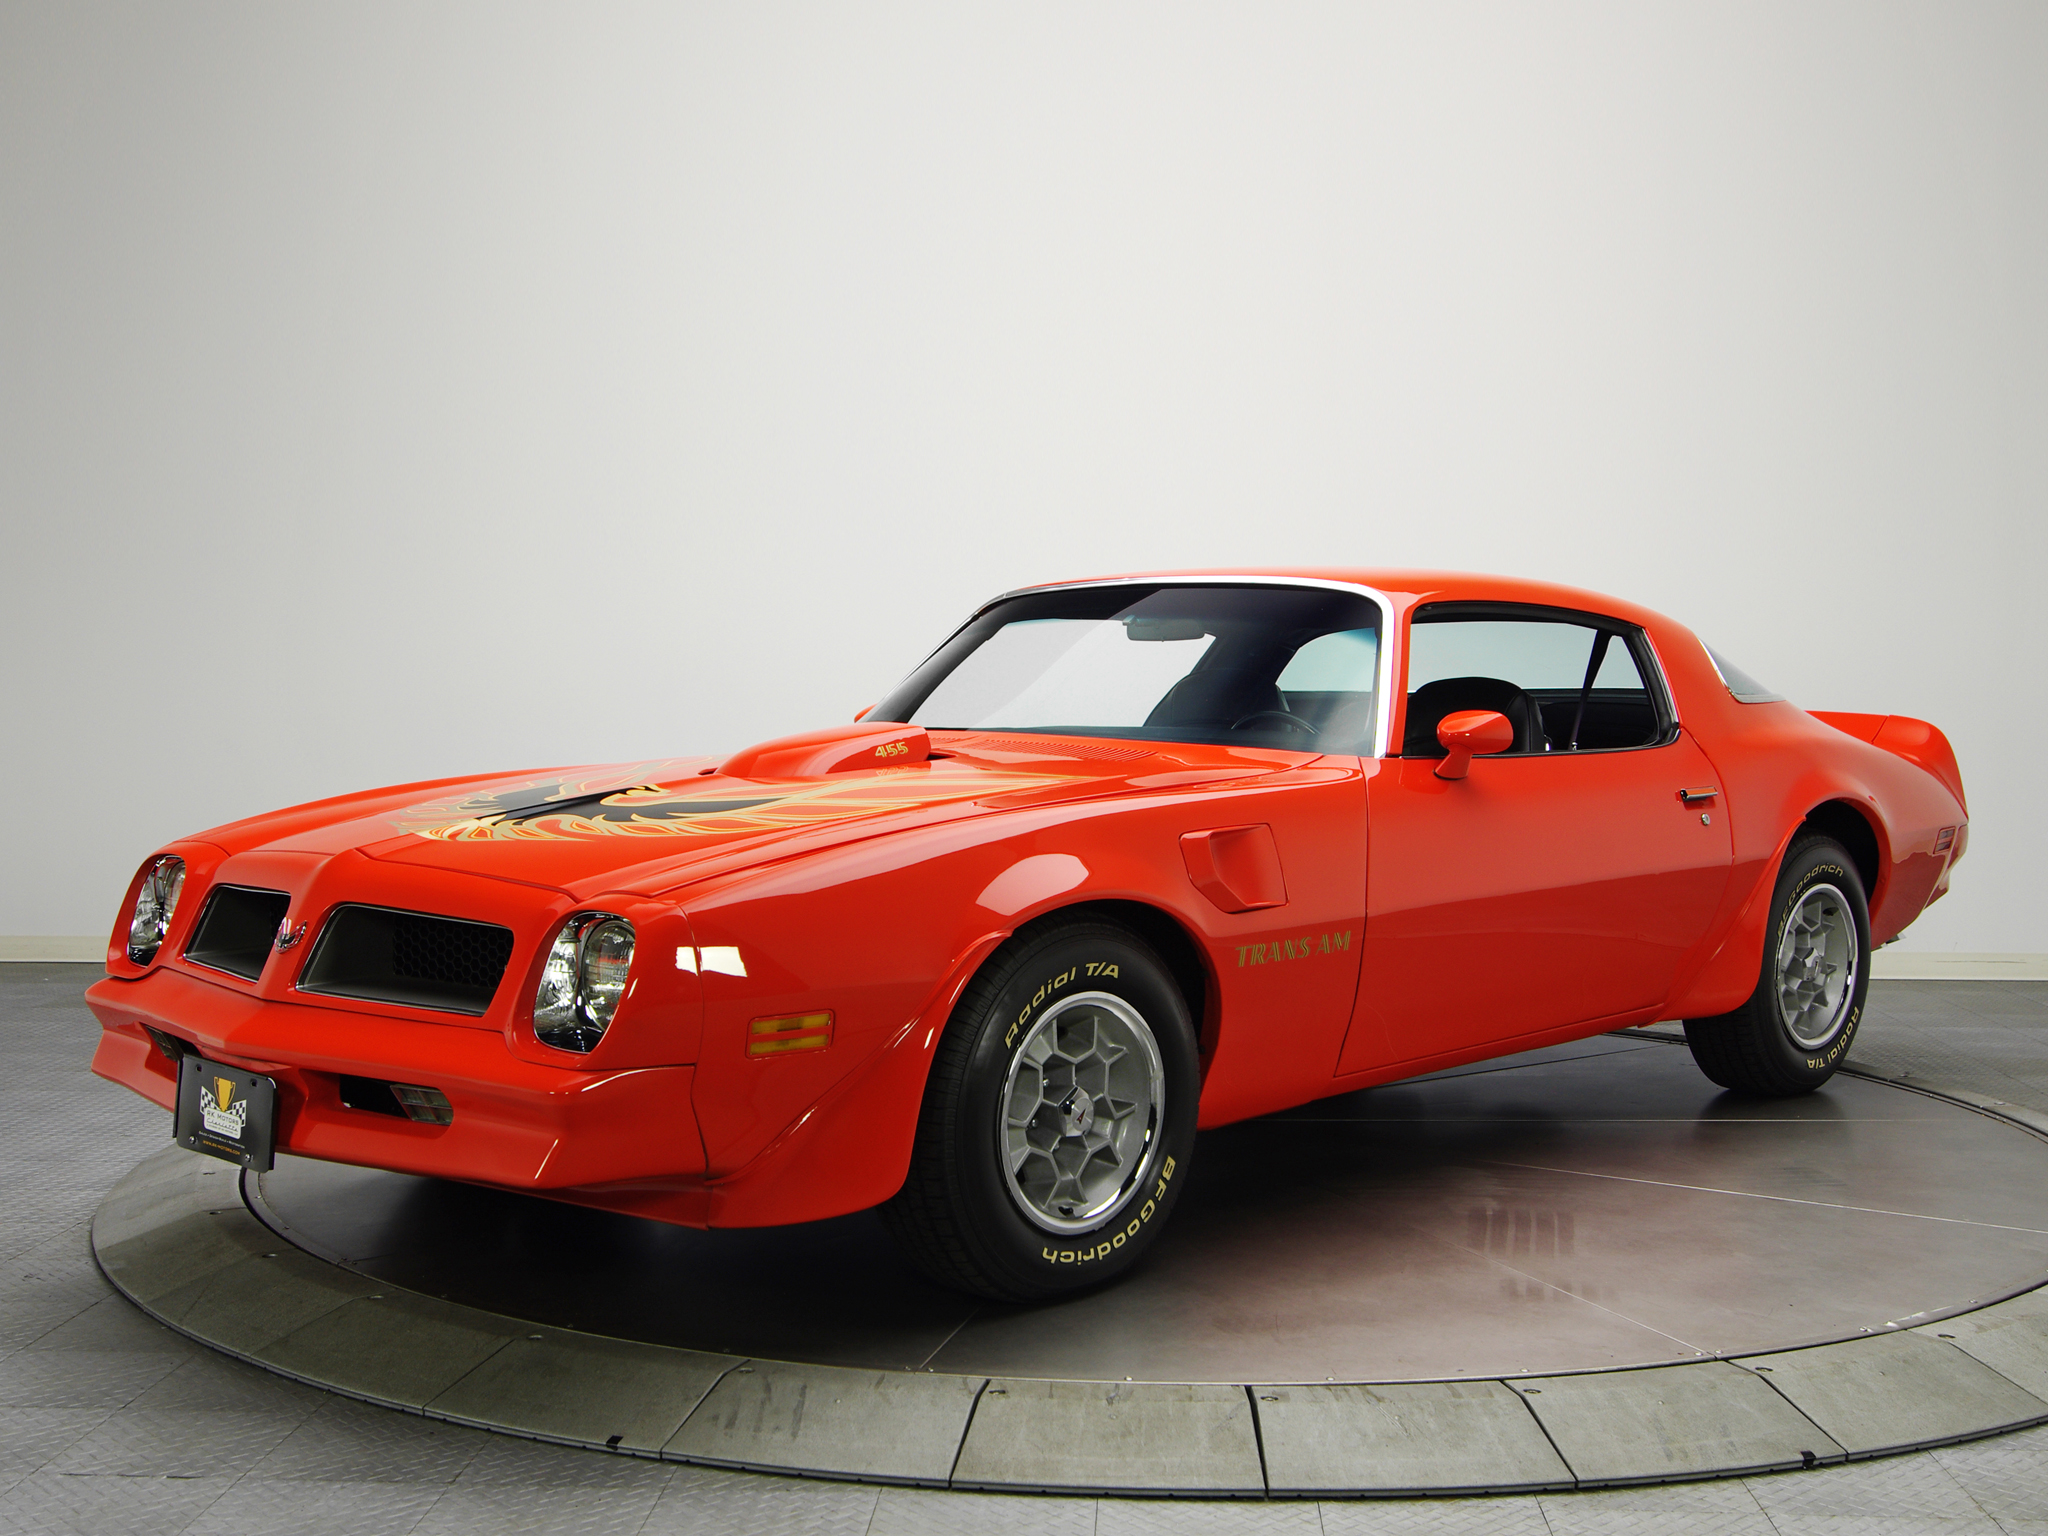 1976 pontiac firebird trans am l75 455 muscle classic. Black Bedroom Furniture Sets. Home Design Ideas